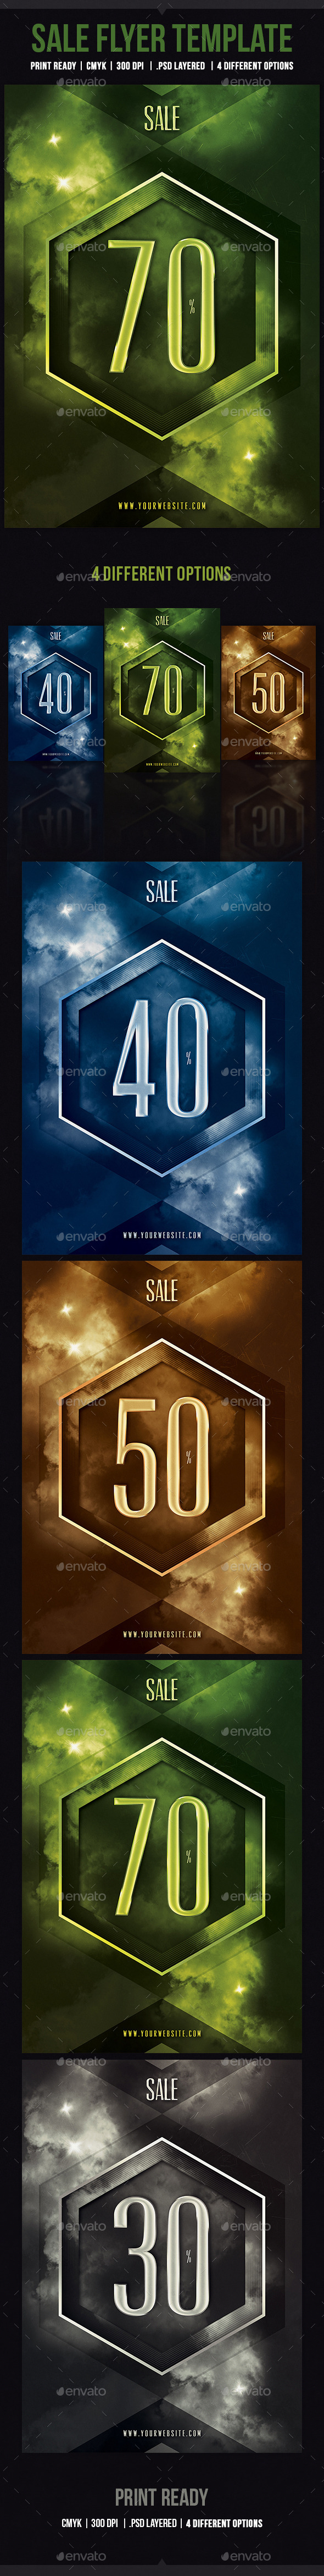 GraphicRiver Sale Flyer Template 10916314